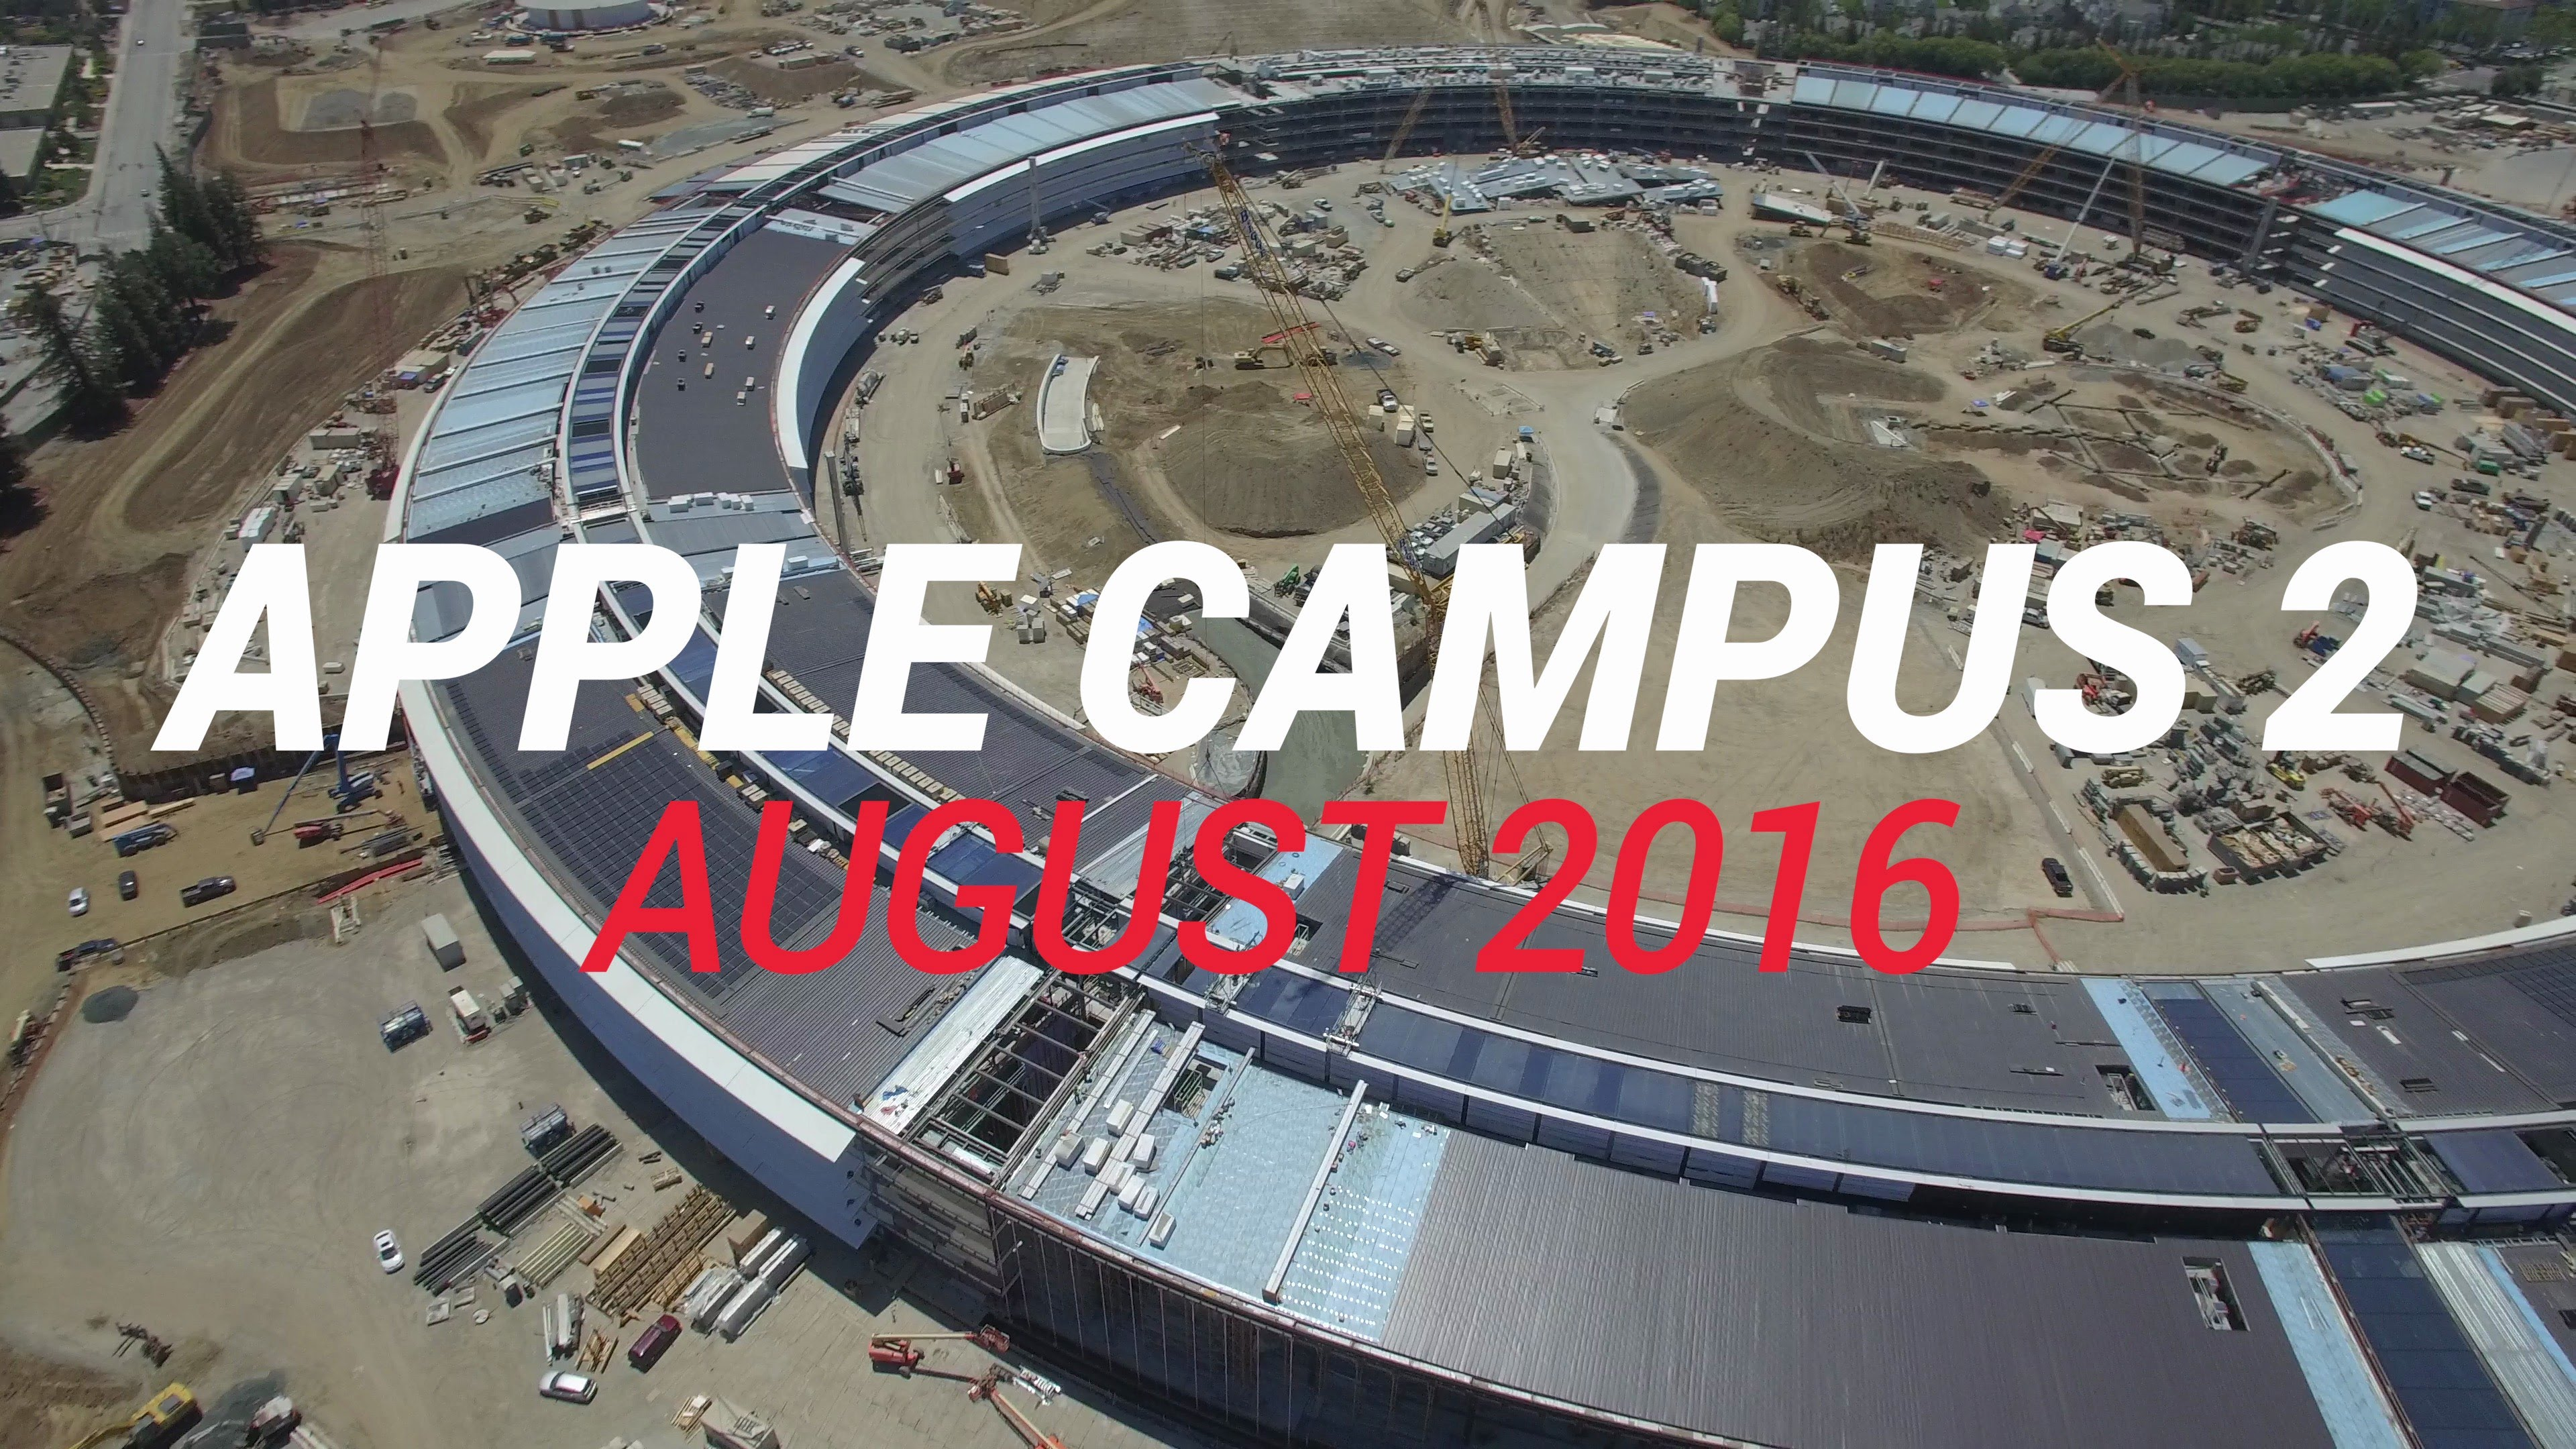 Overhead Drone Footage Captures The Current Construction Progress Of Apple Campus 2